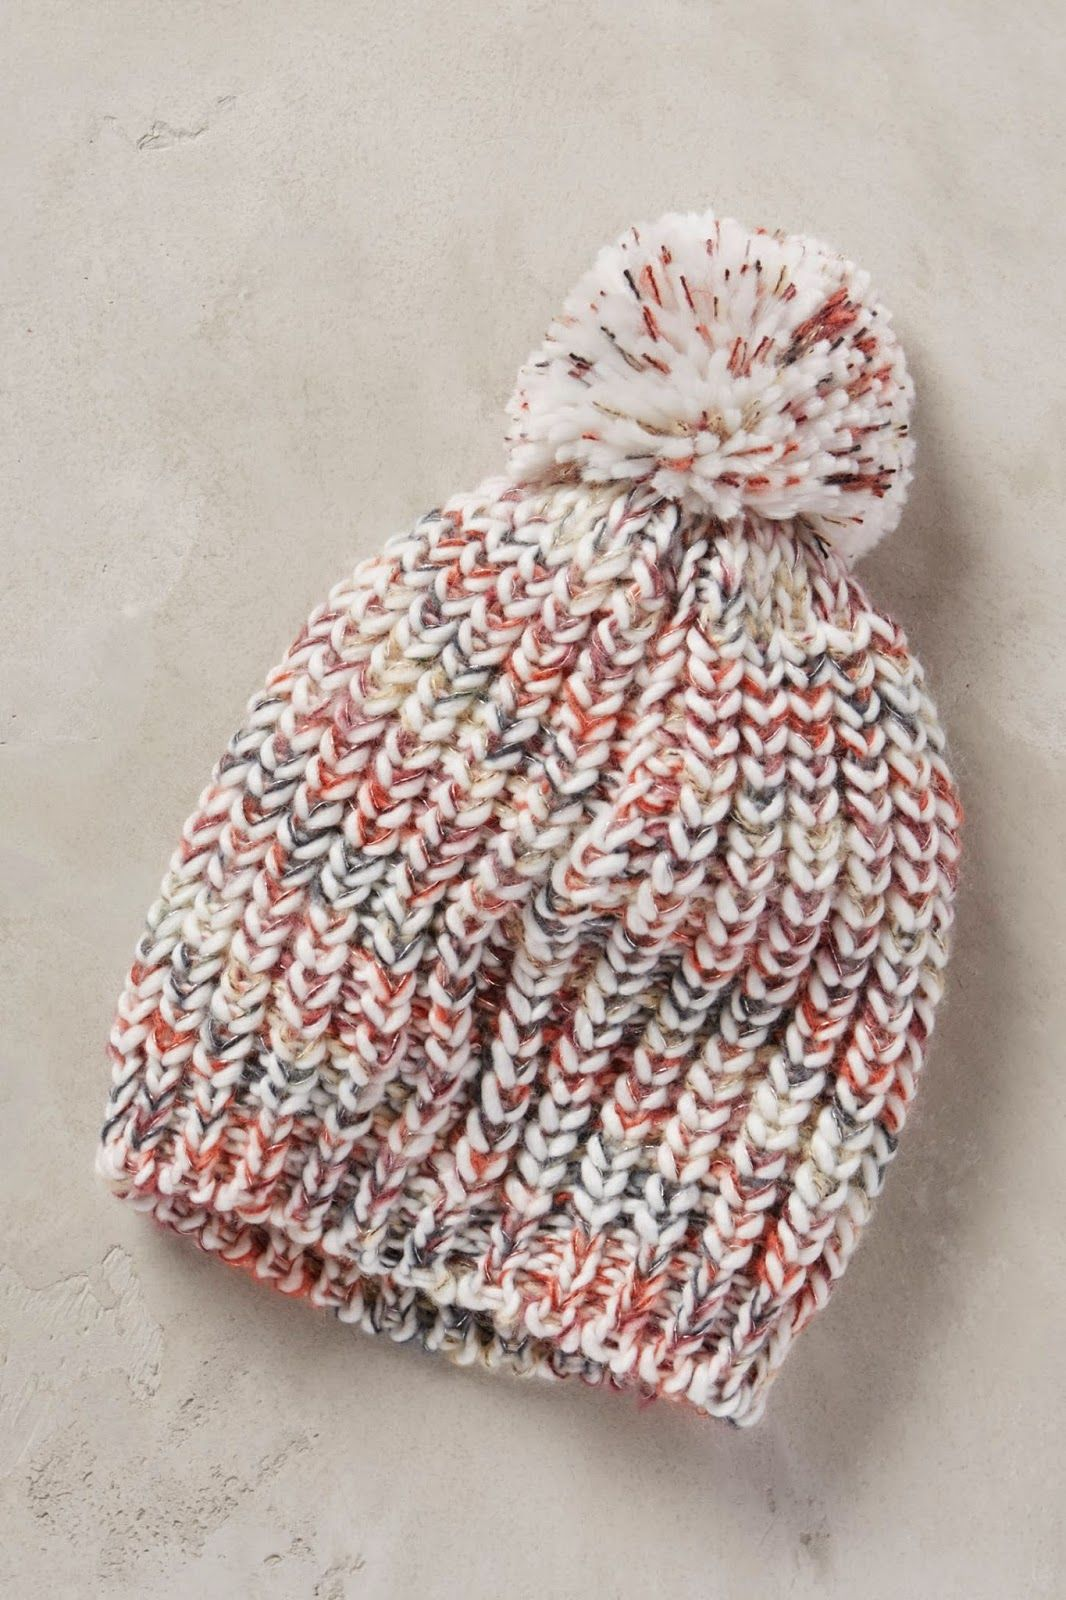 Anthropologie Inspired Knitted Hat Pattern | Anthropologie, Patterns ...